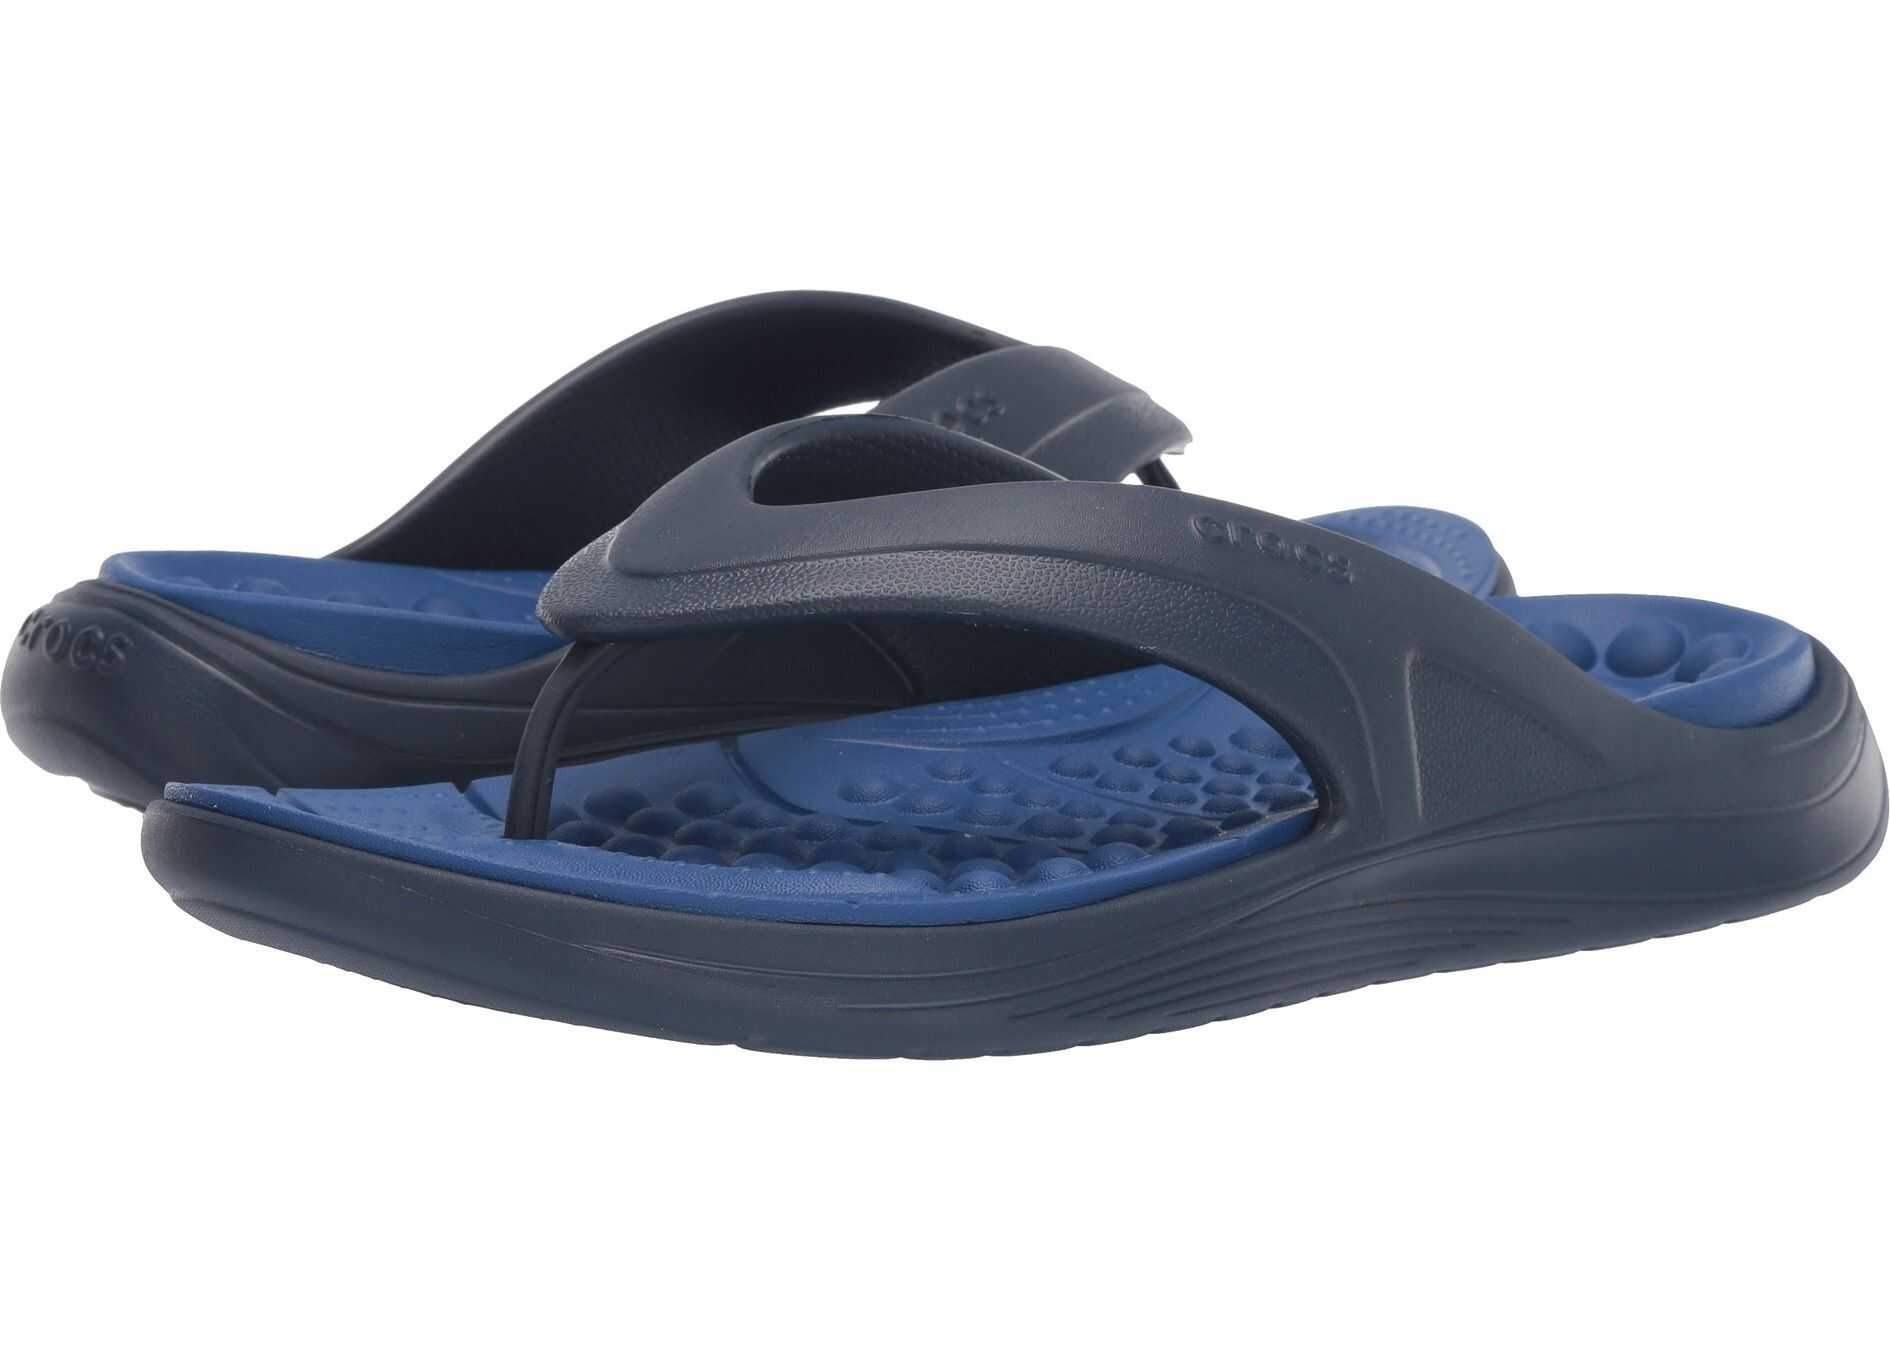 Crocs Reviva Flip Navy/Blue Jean